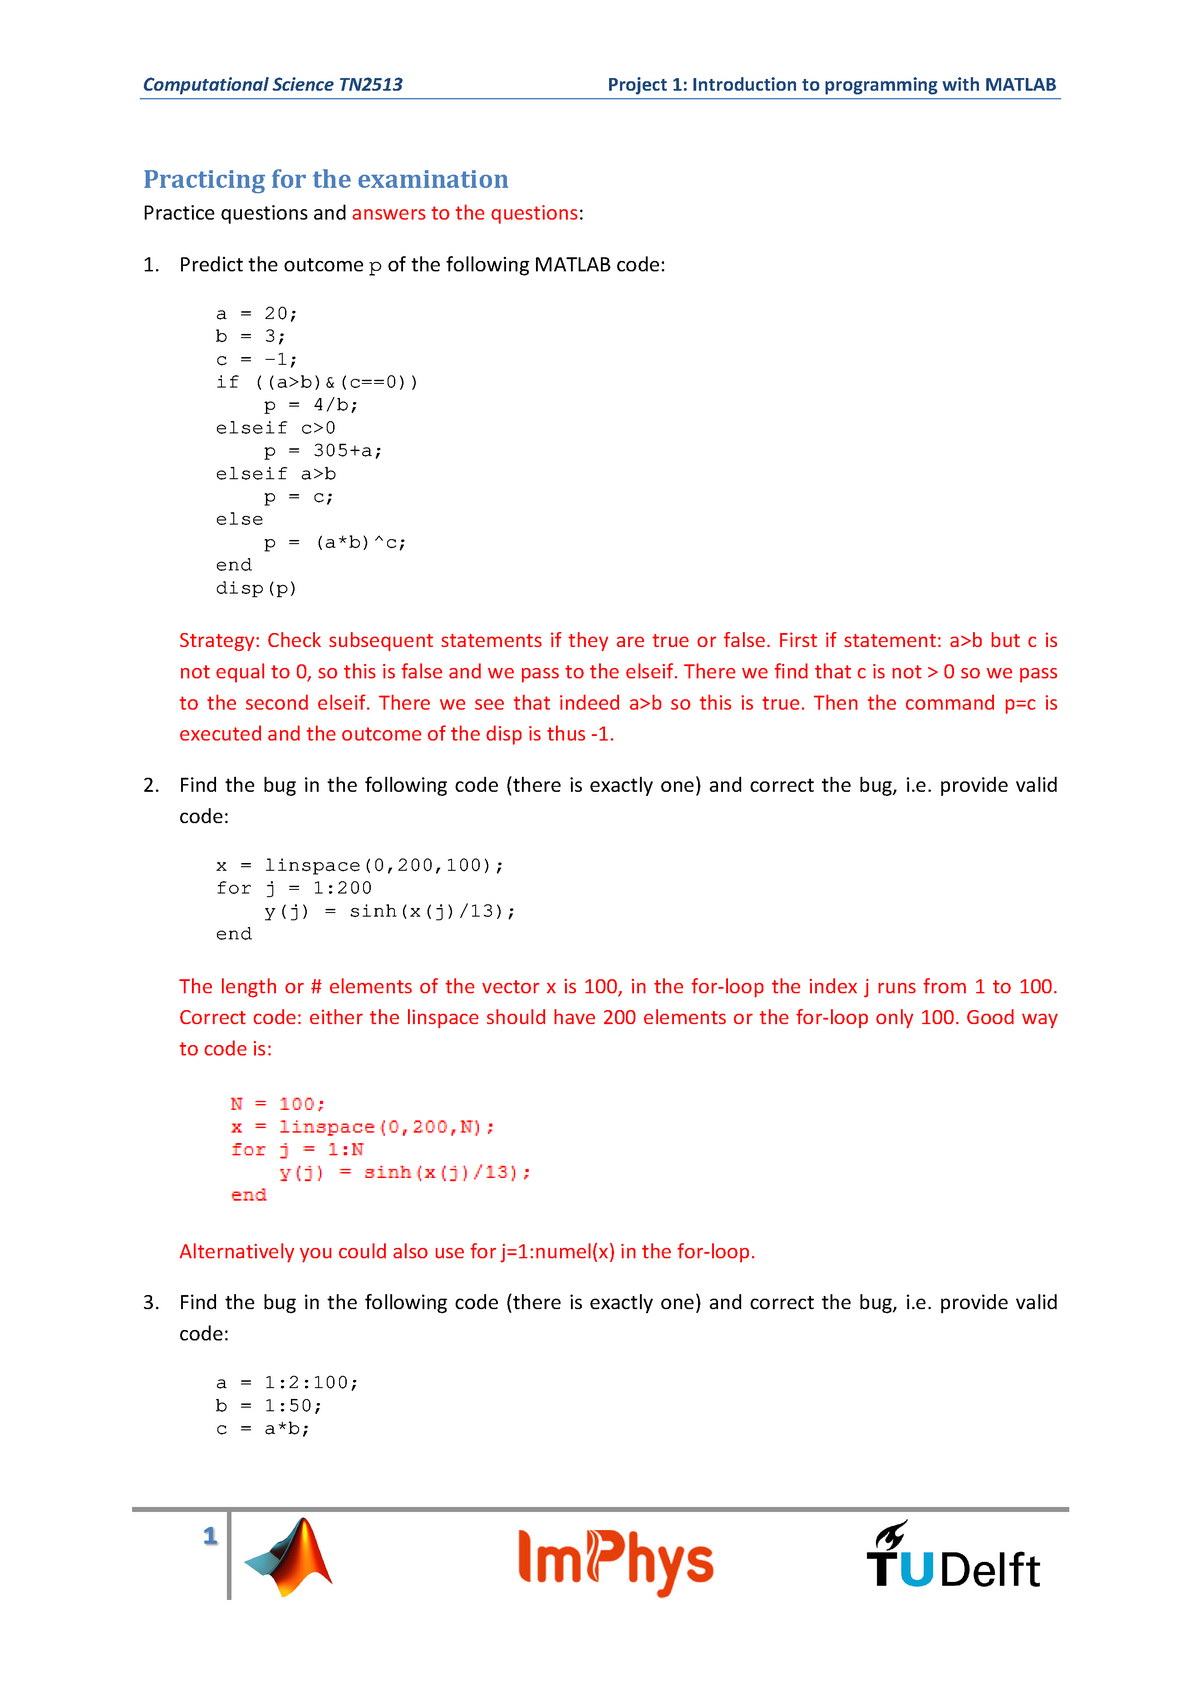 Project Programming With Matlab Examination Questions - TN2513